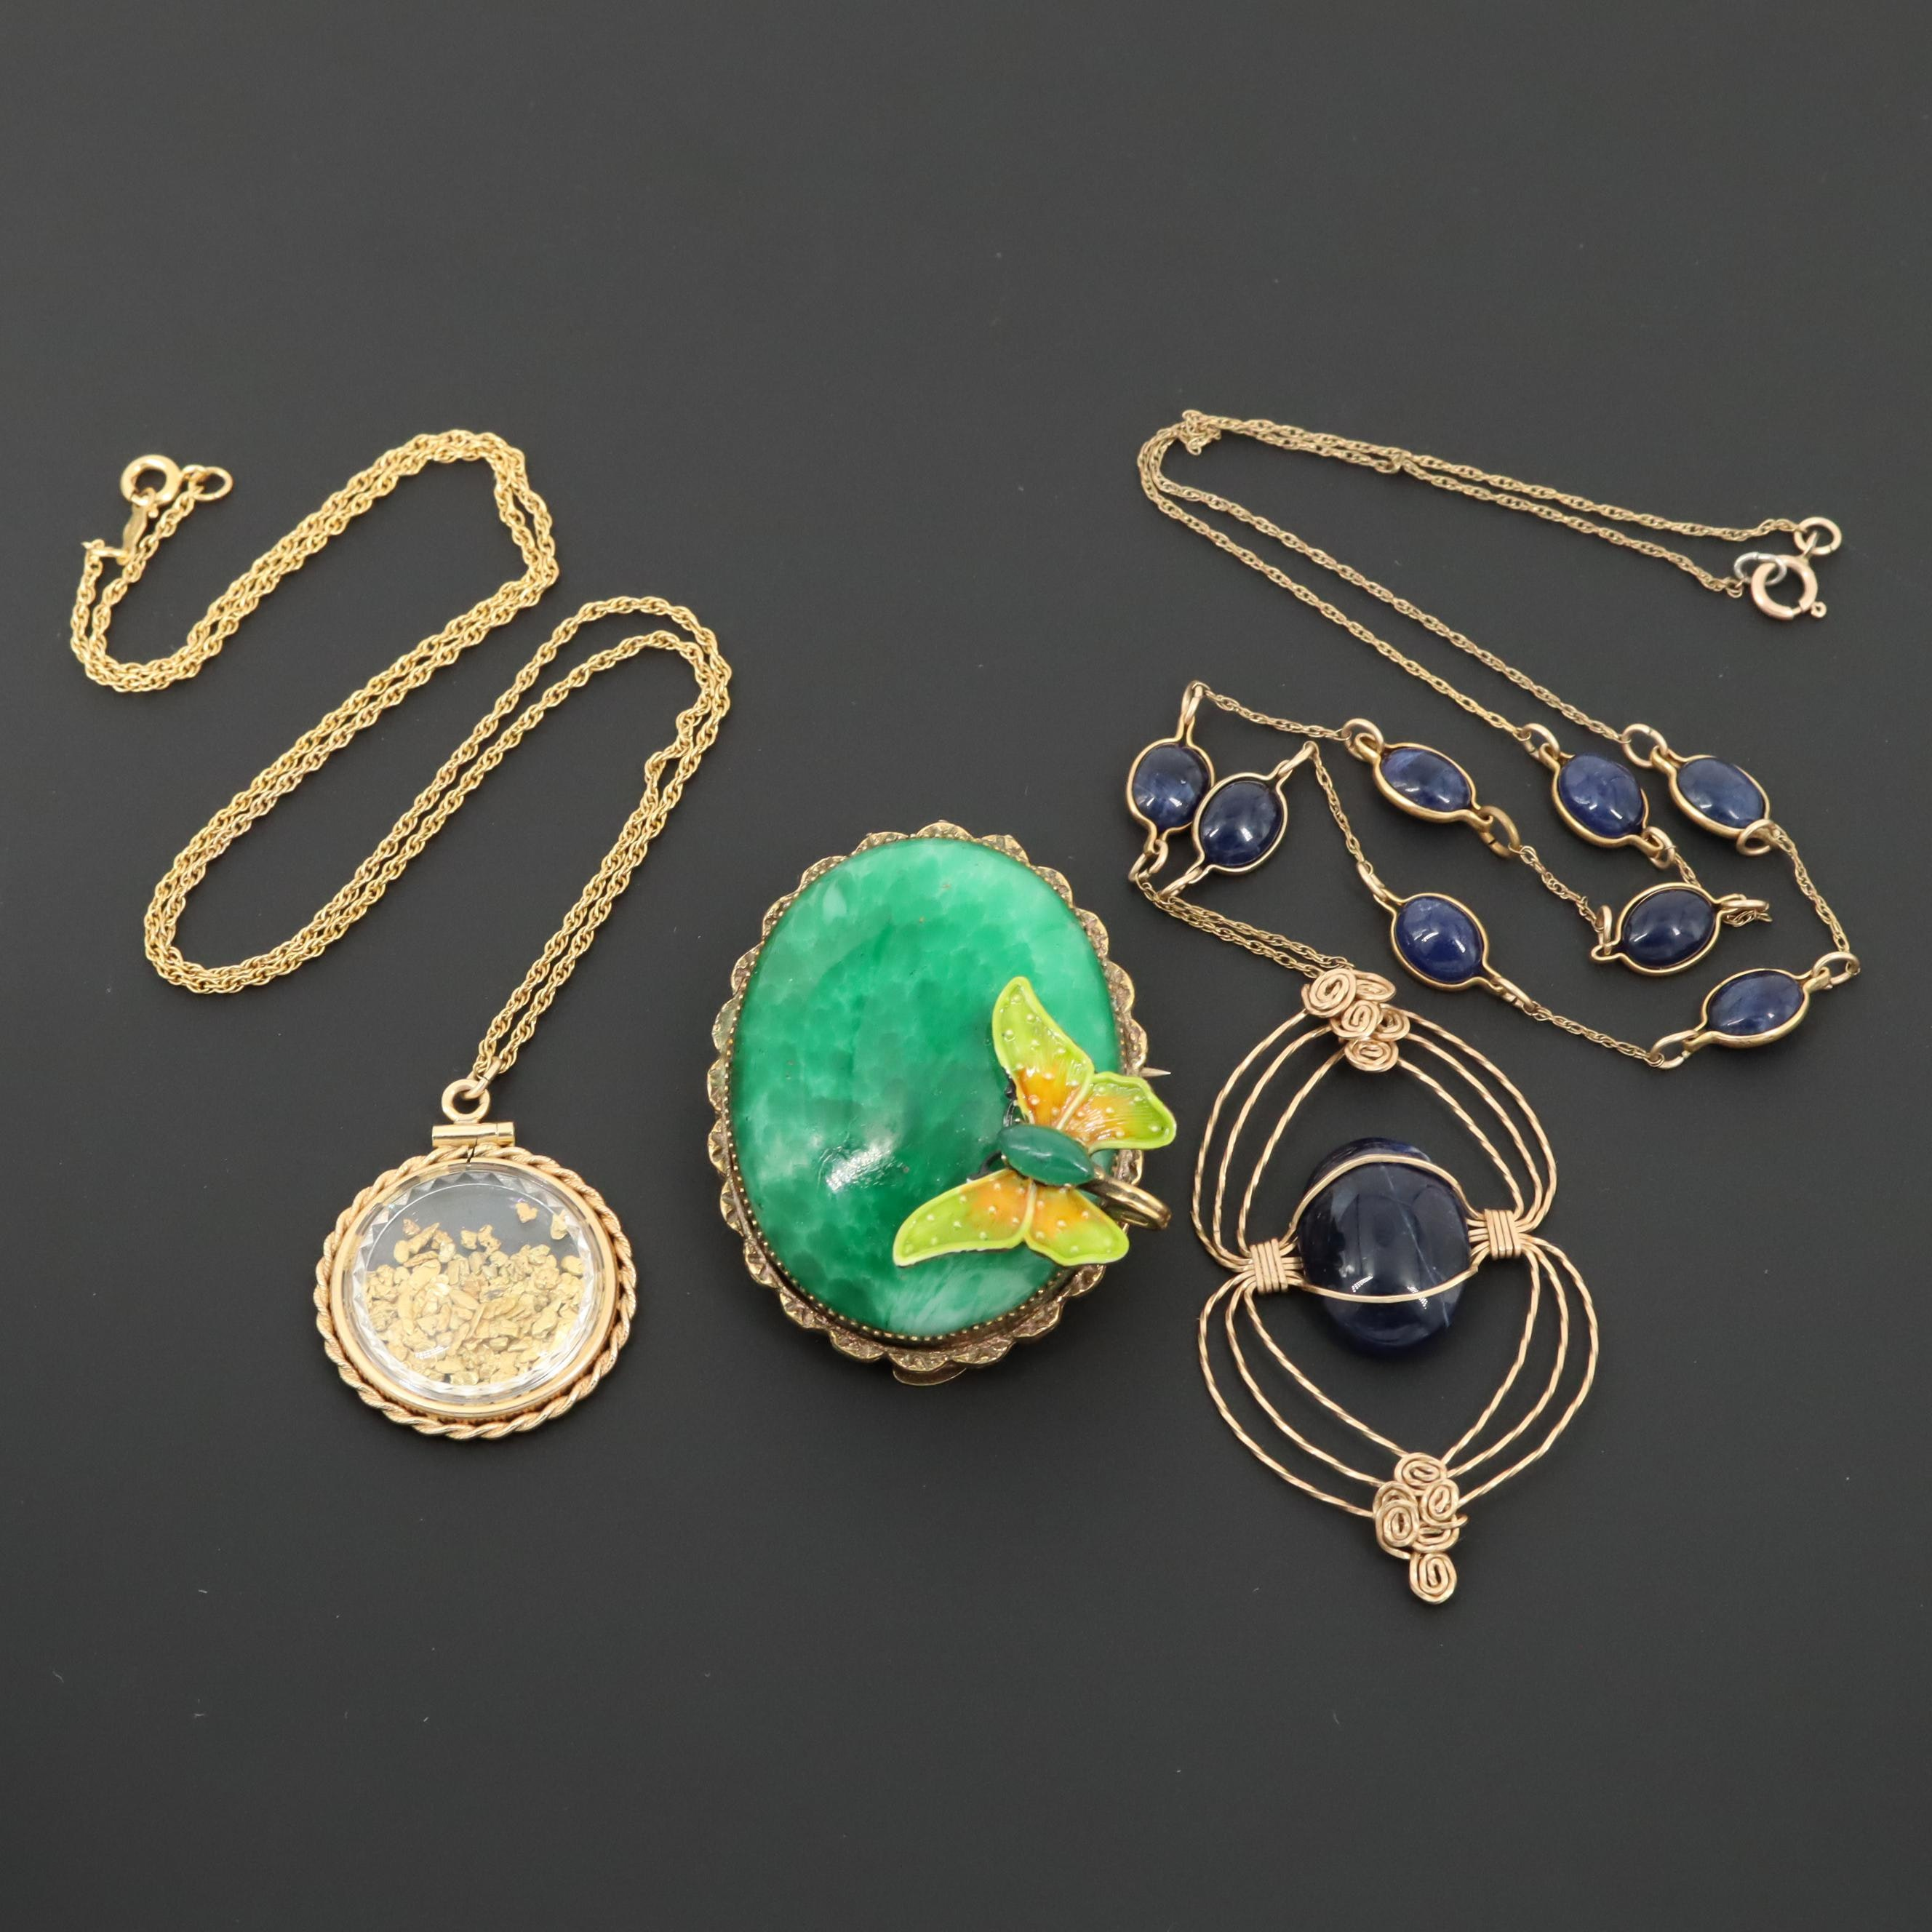 Sodalite and Glass Pendant Necklaces and Original By Robert Converter Brooch